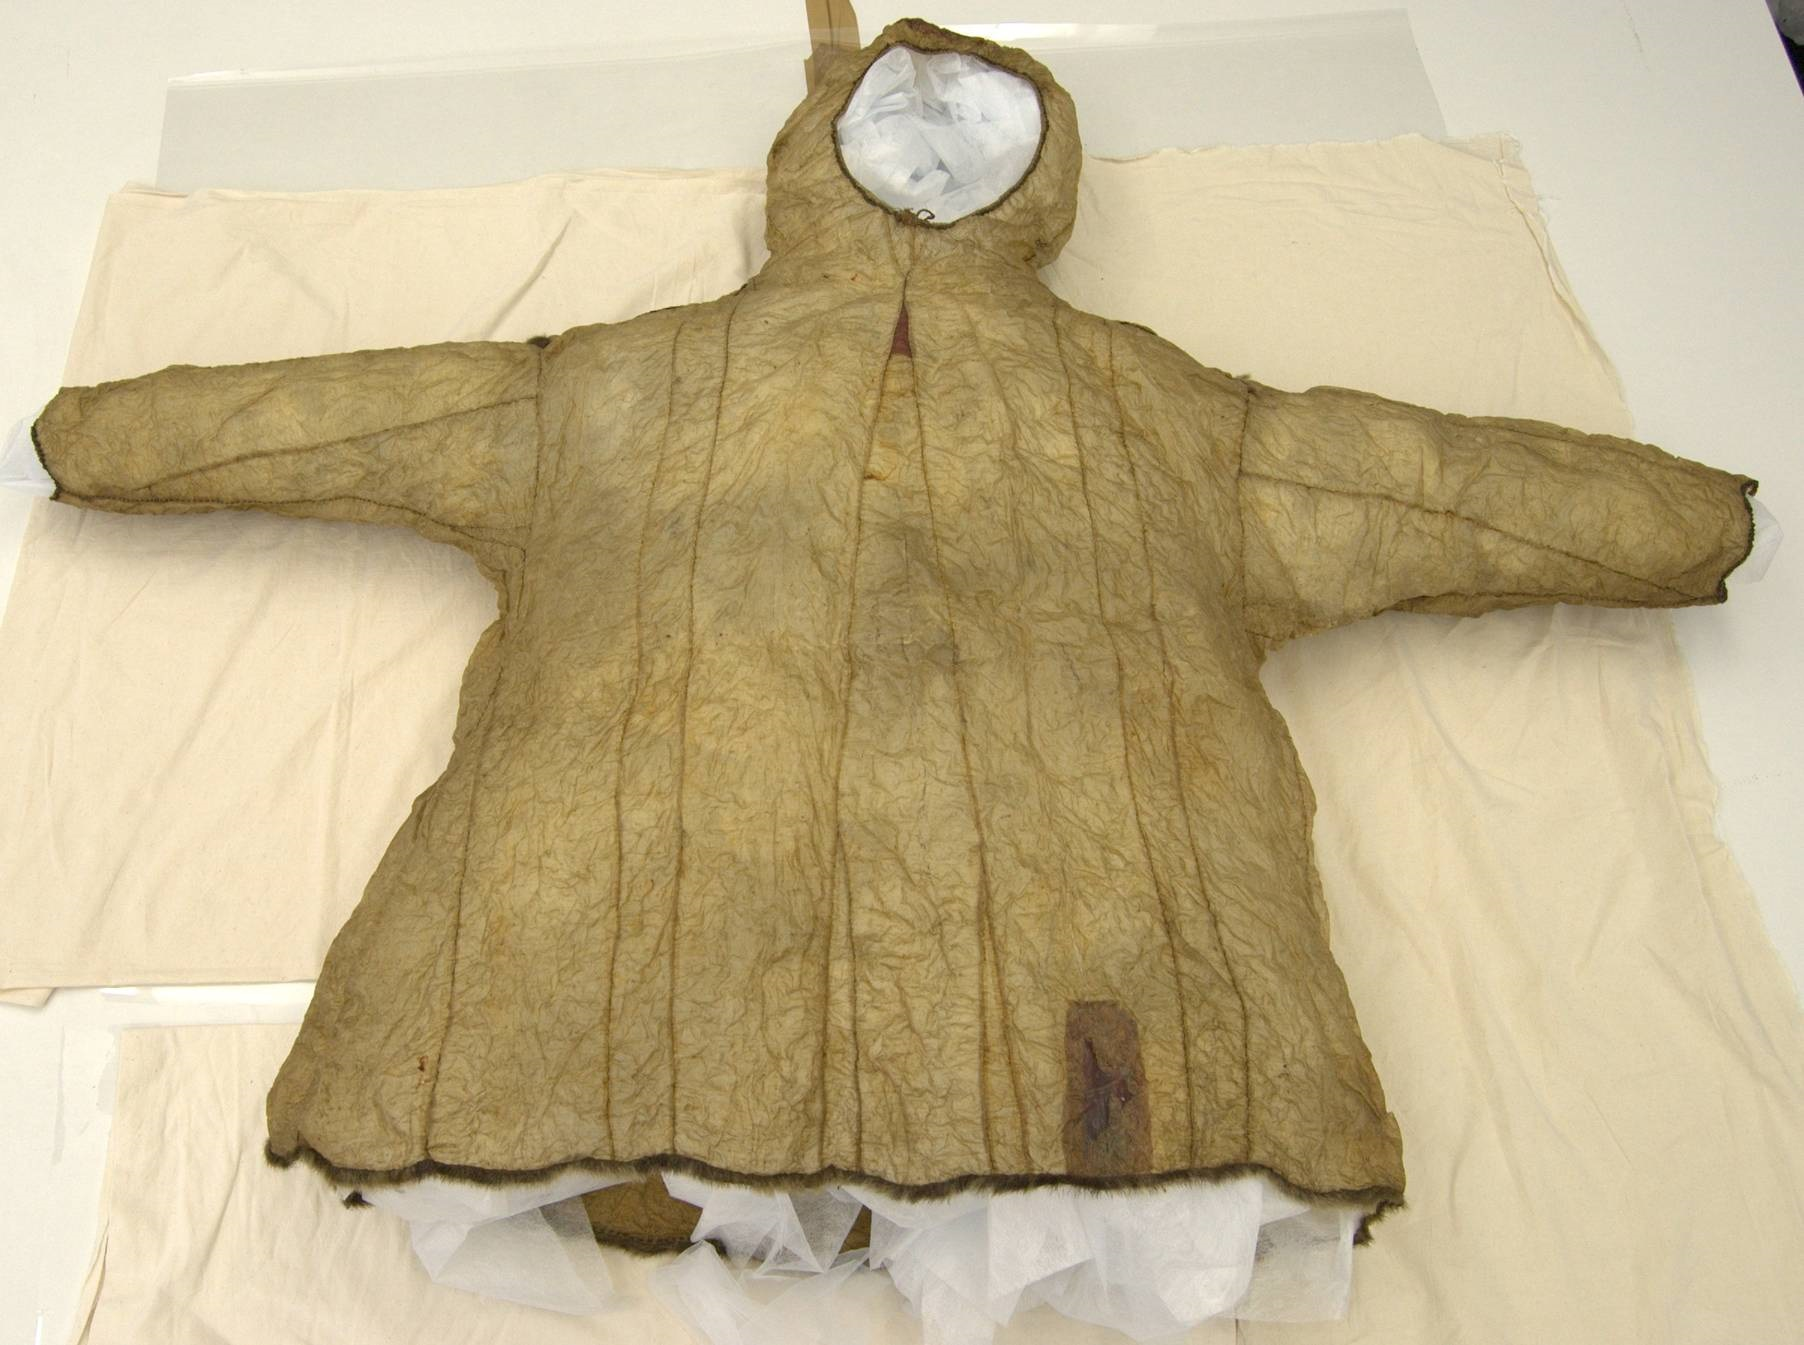 Fig. 6 The parka opened out after humidification treatment